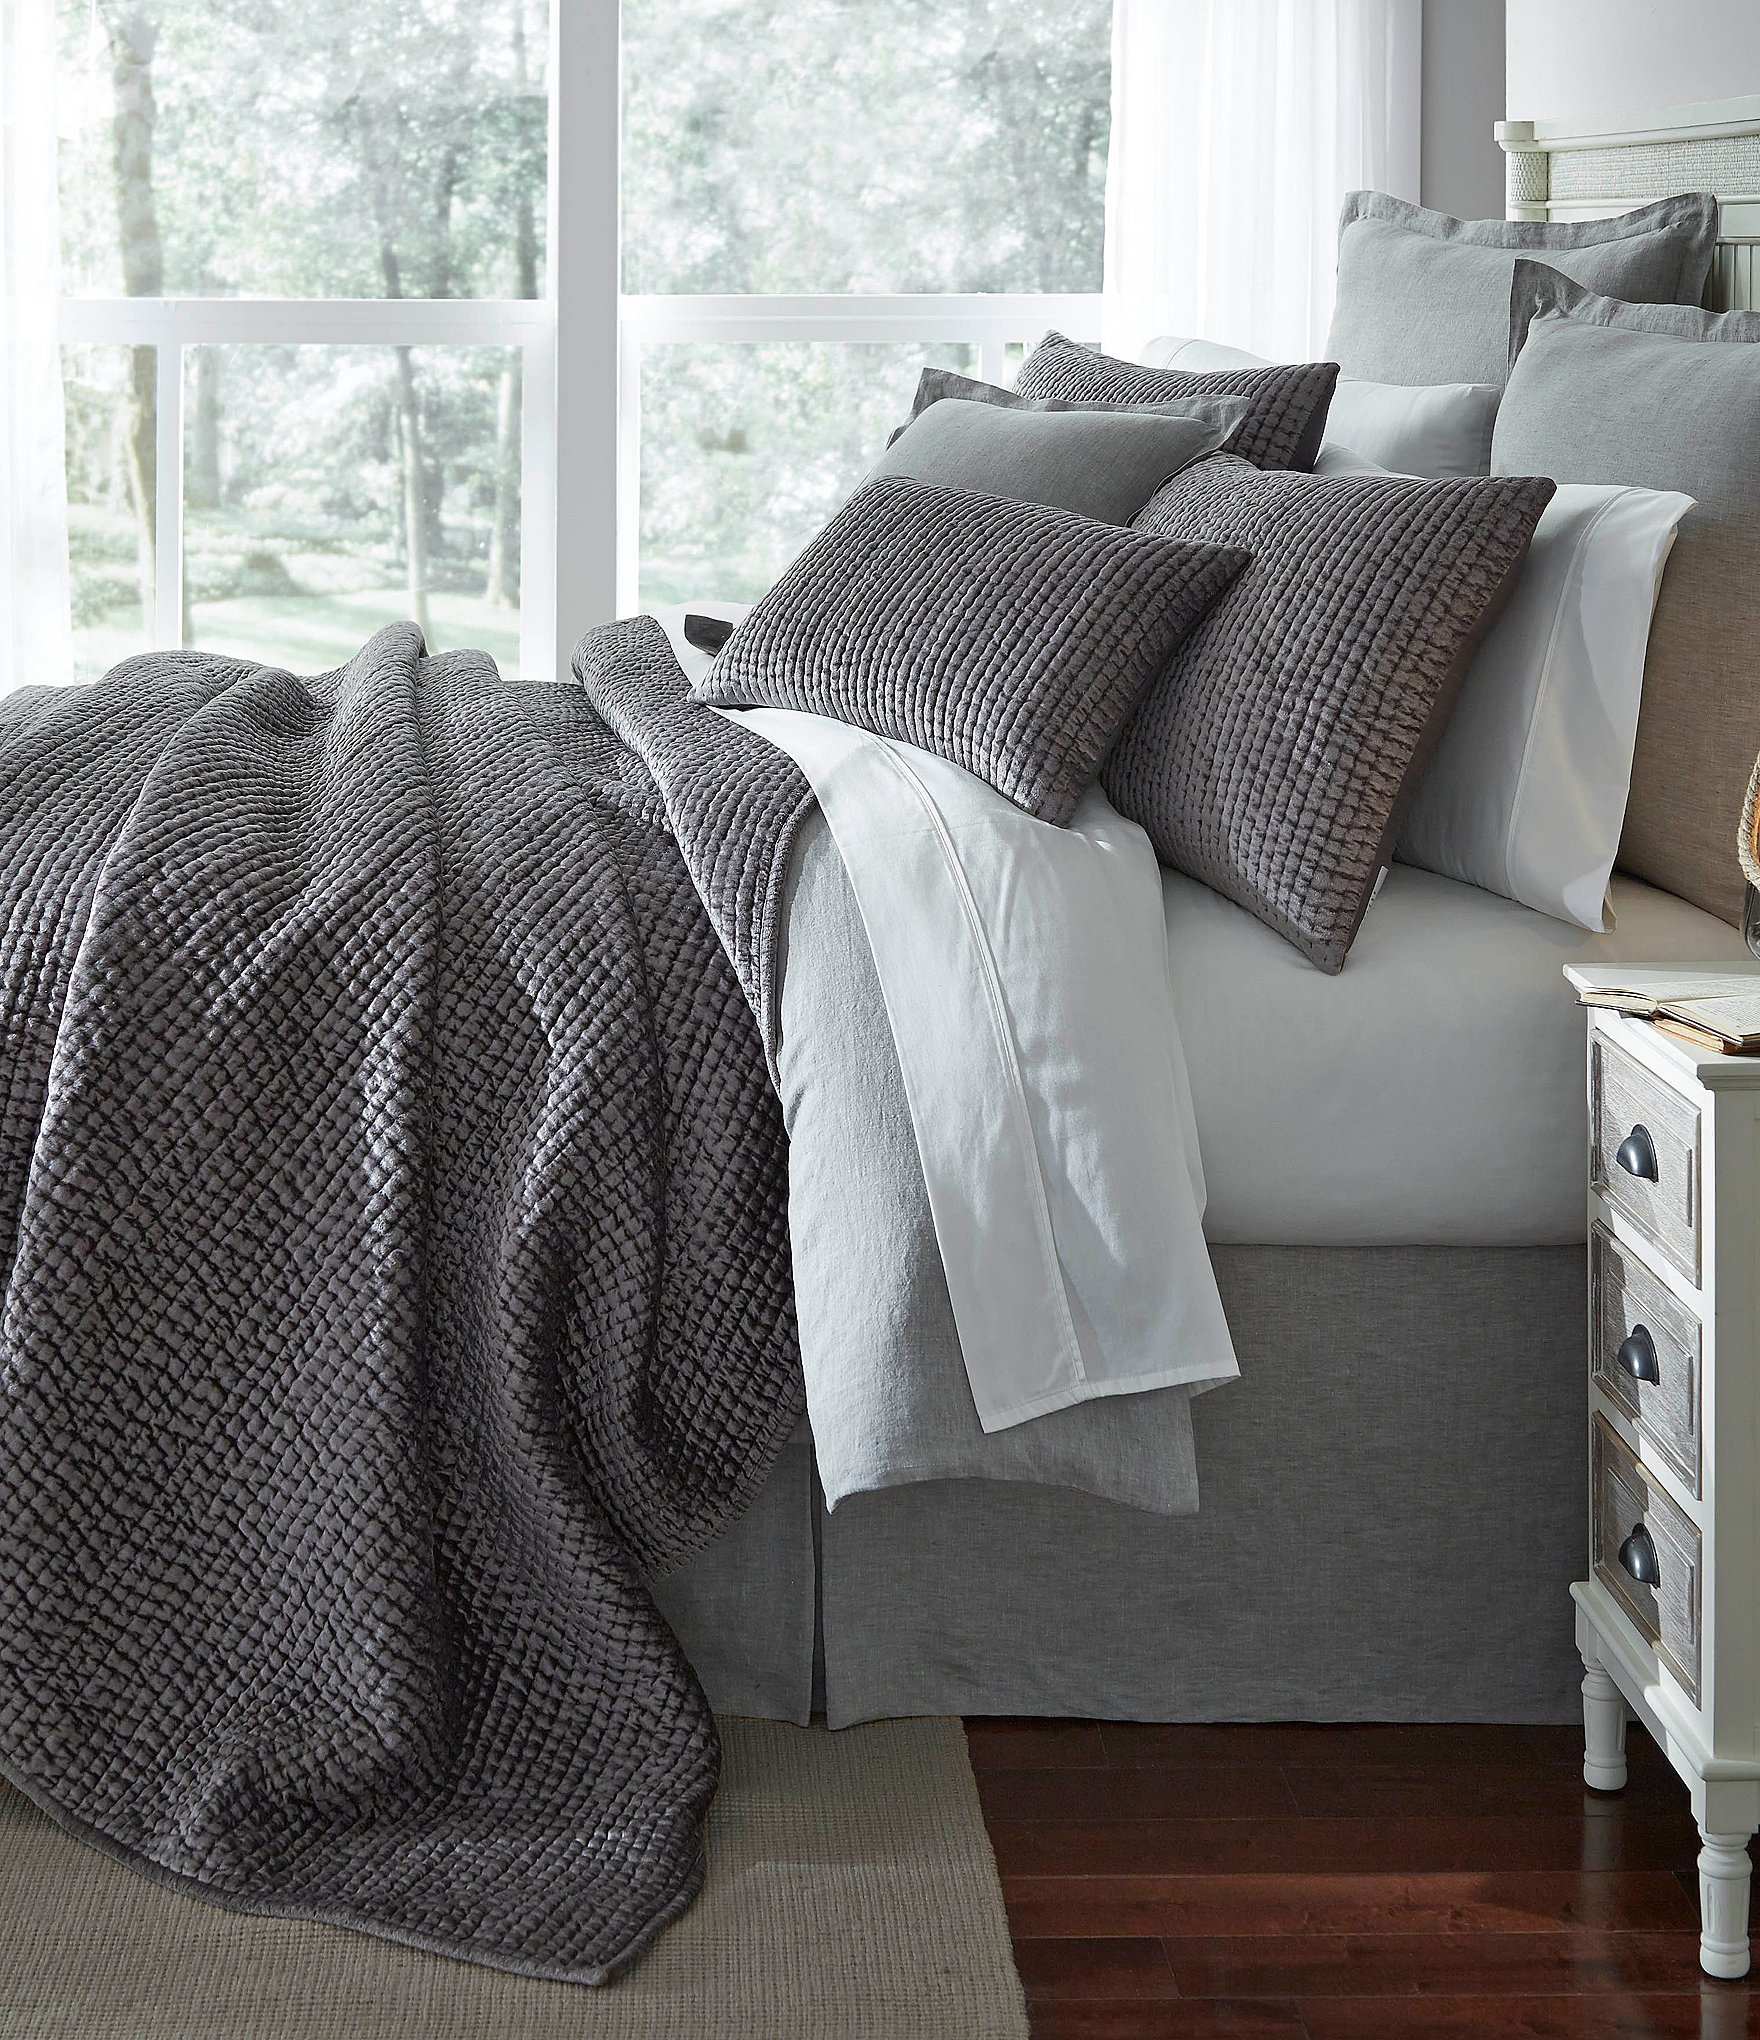 Gray Velvet Coverlet : Southern living camden velvet satin coverlet mini set